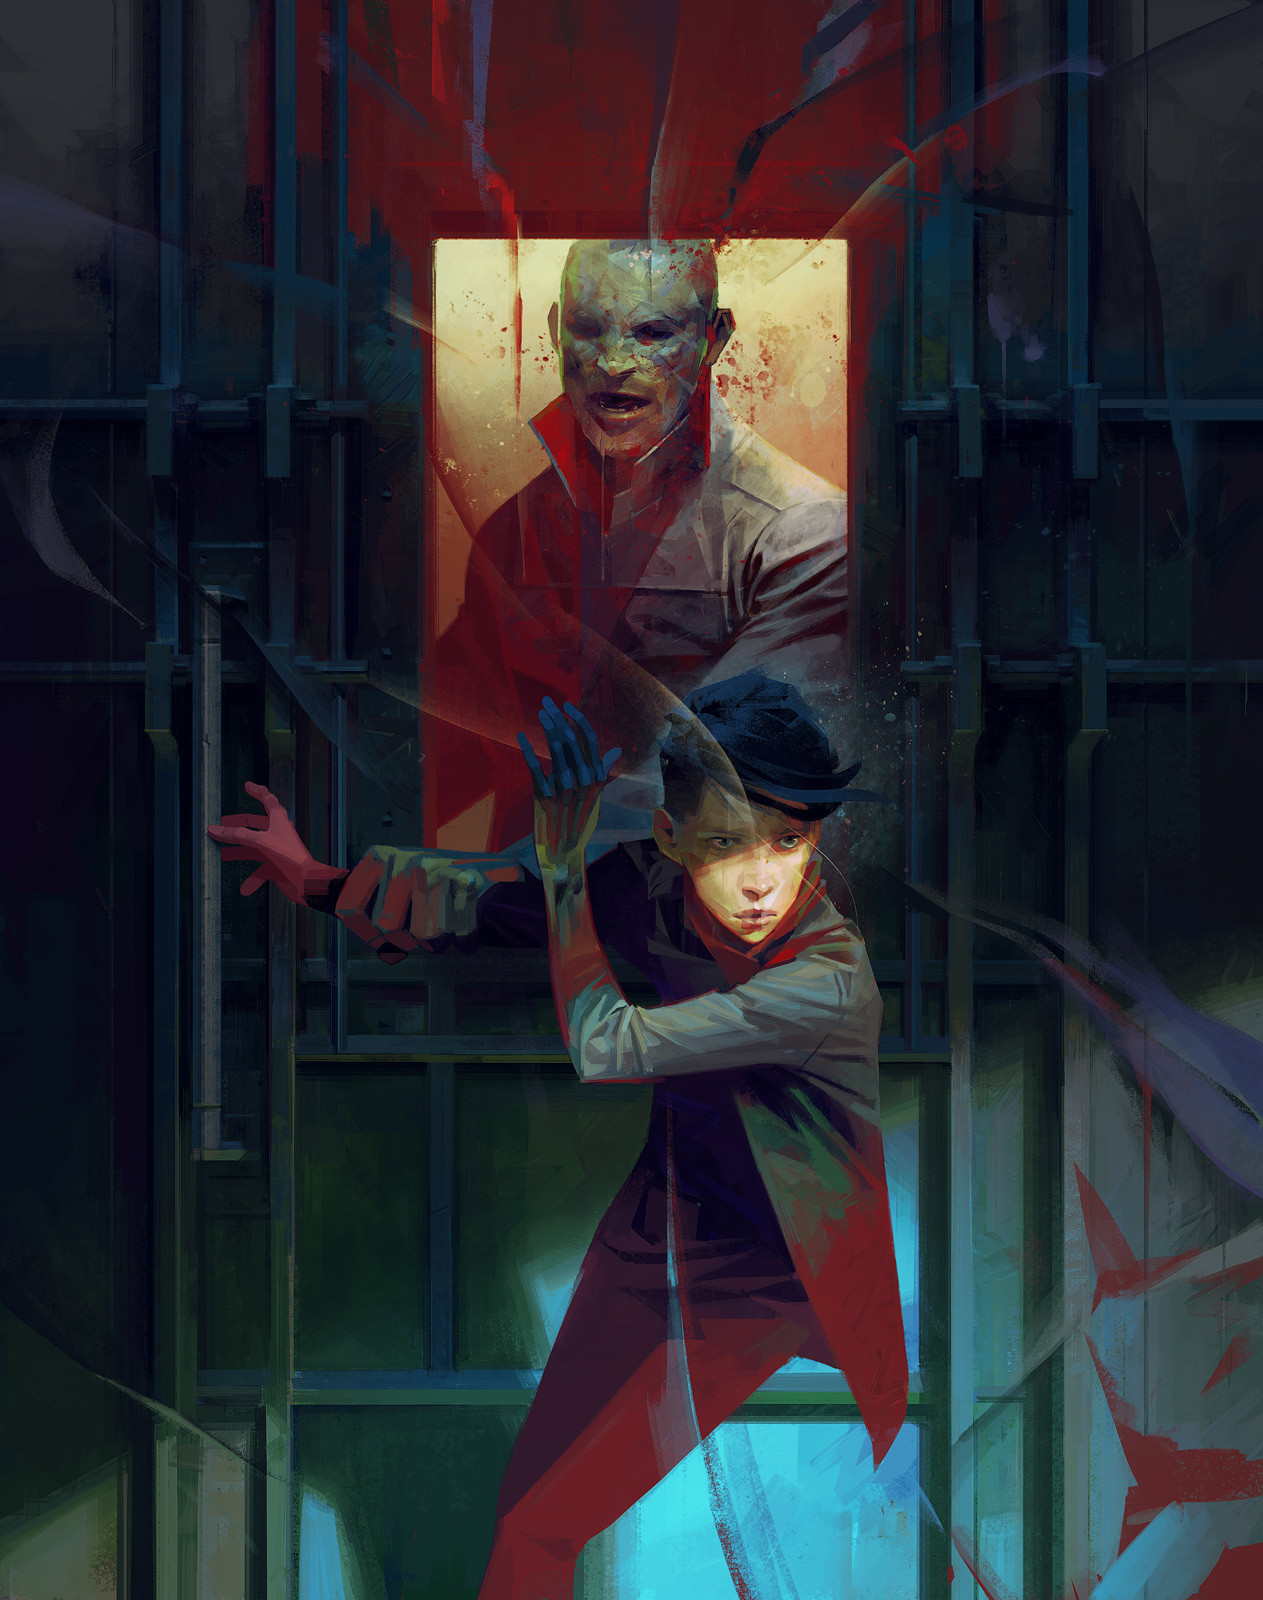 Sergey Kolesov Digital Painting Concept Art Dishonored 2 Painting Delilah motives